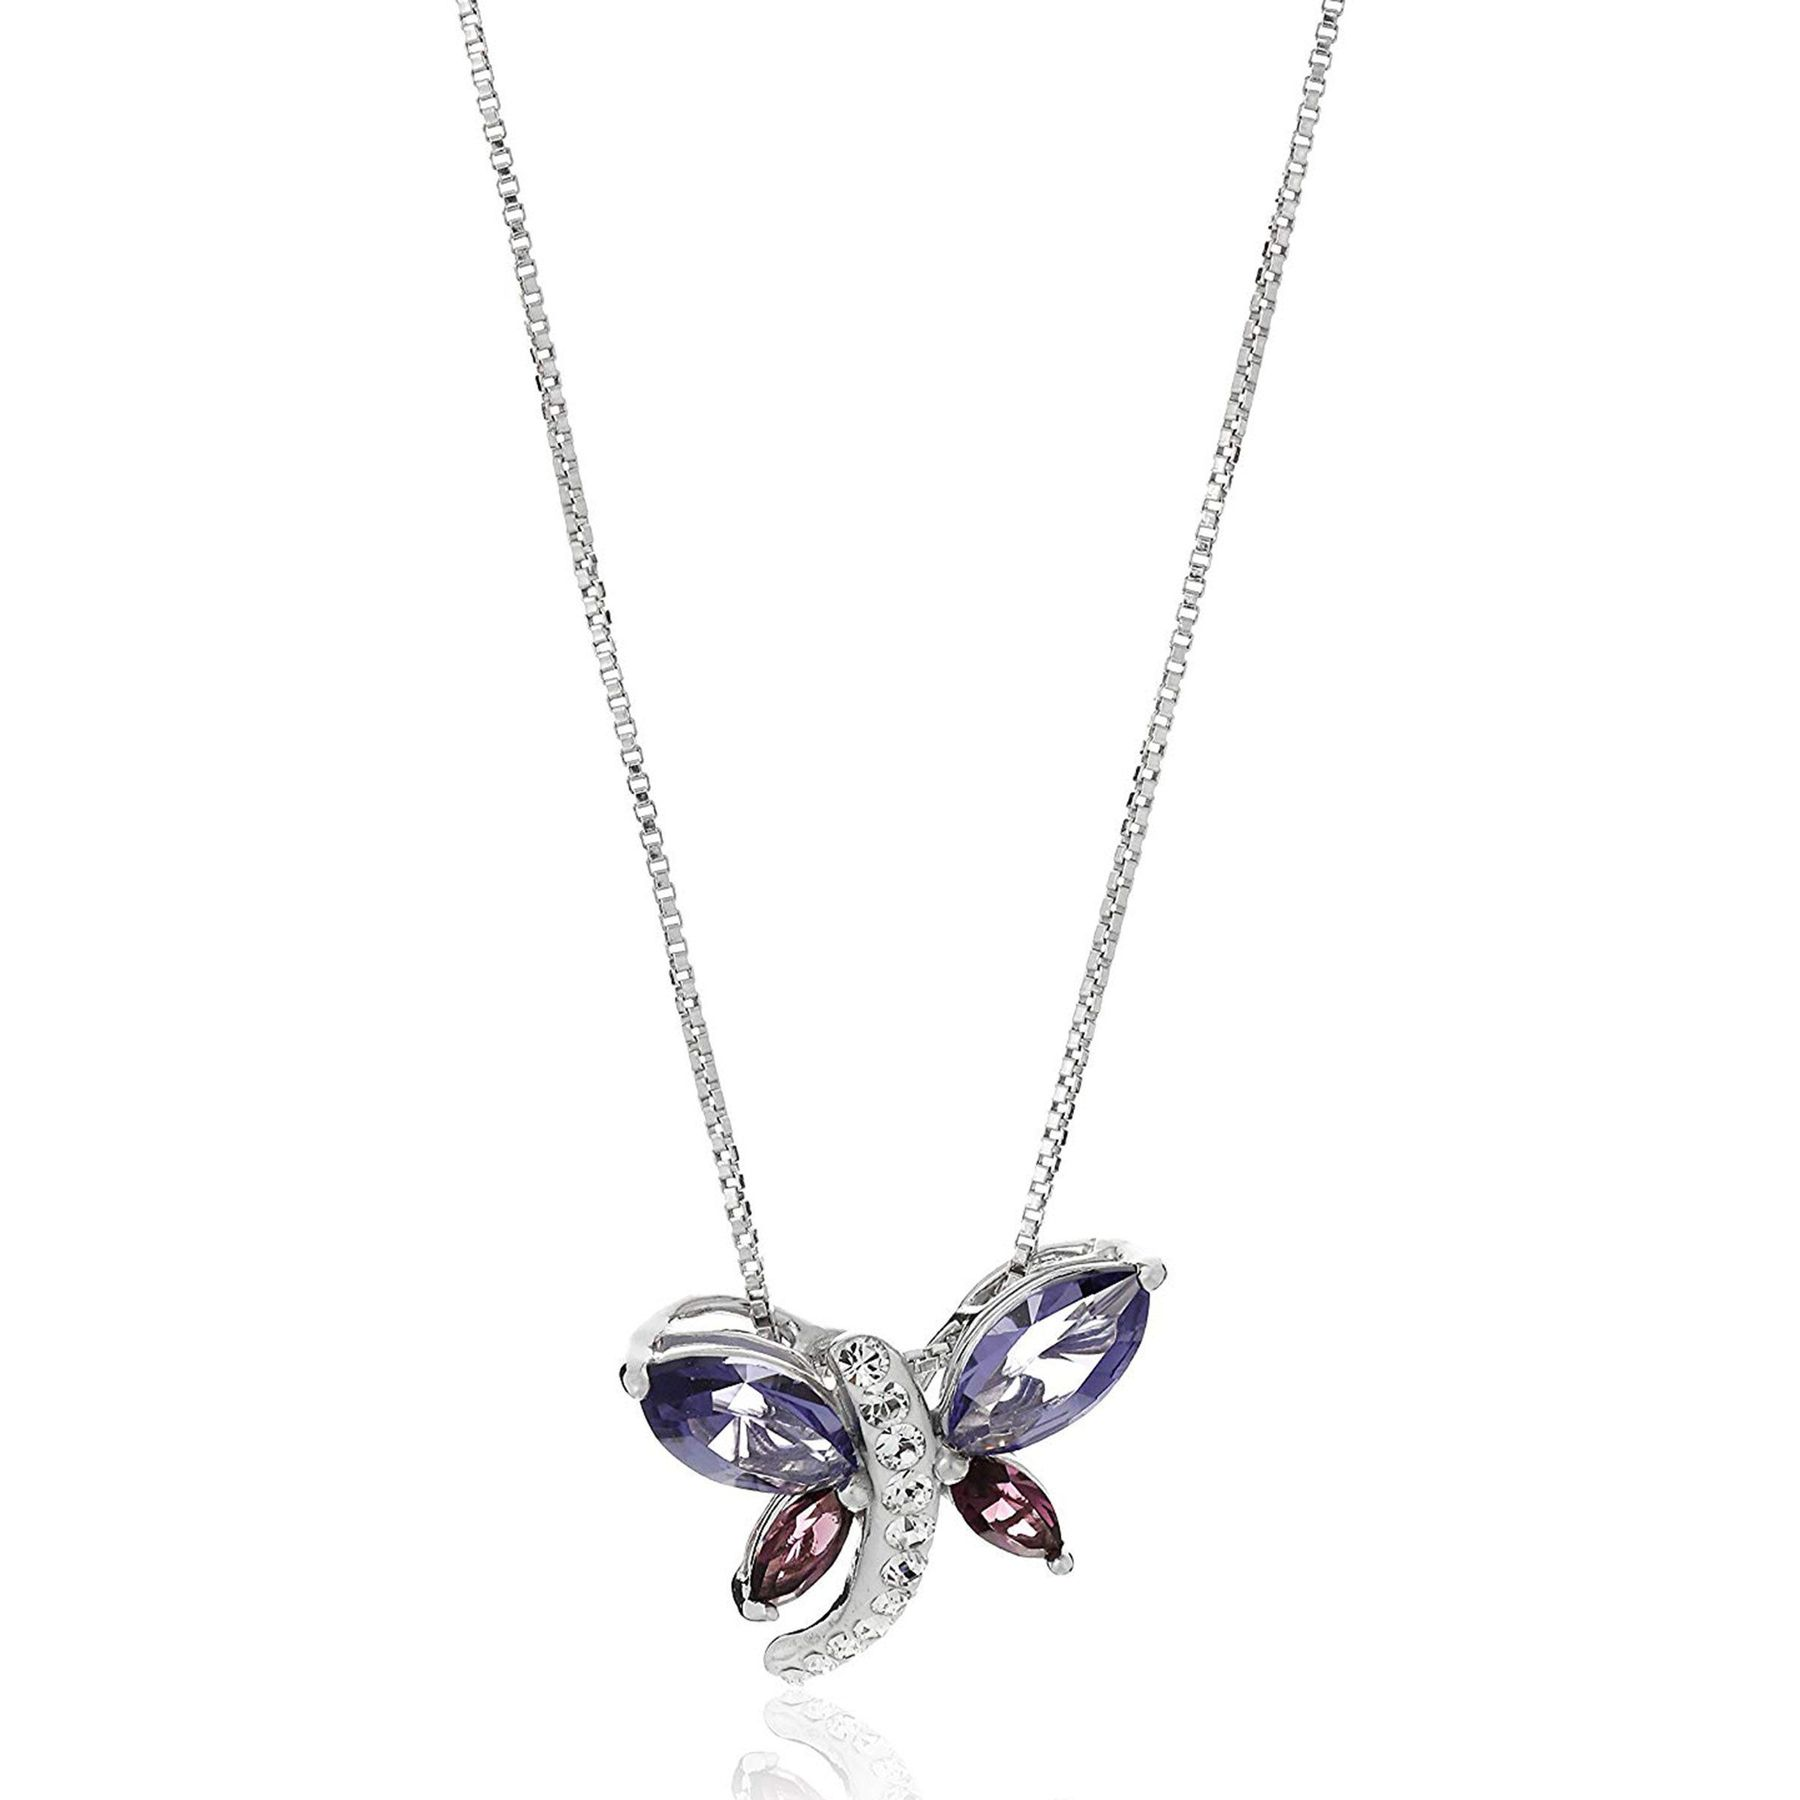 2827e977f Crystaluxe Dragonfly Pendant with Swarovski Crystals in Sterling ...